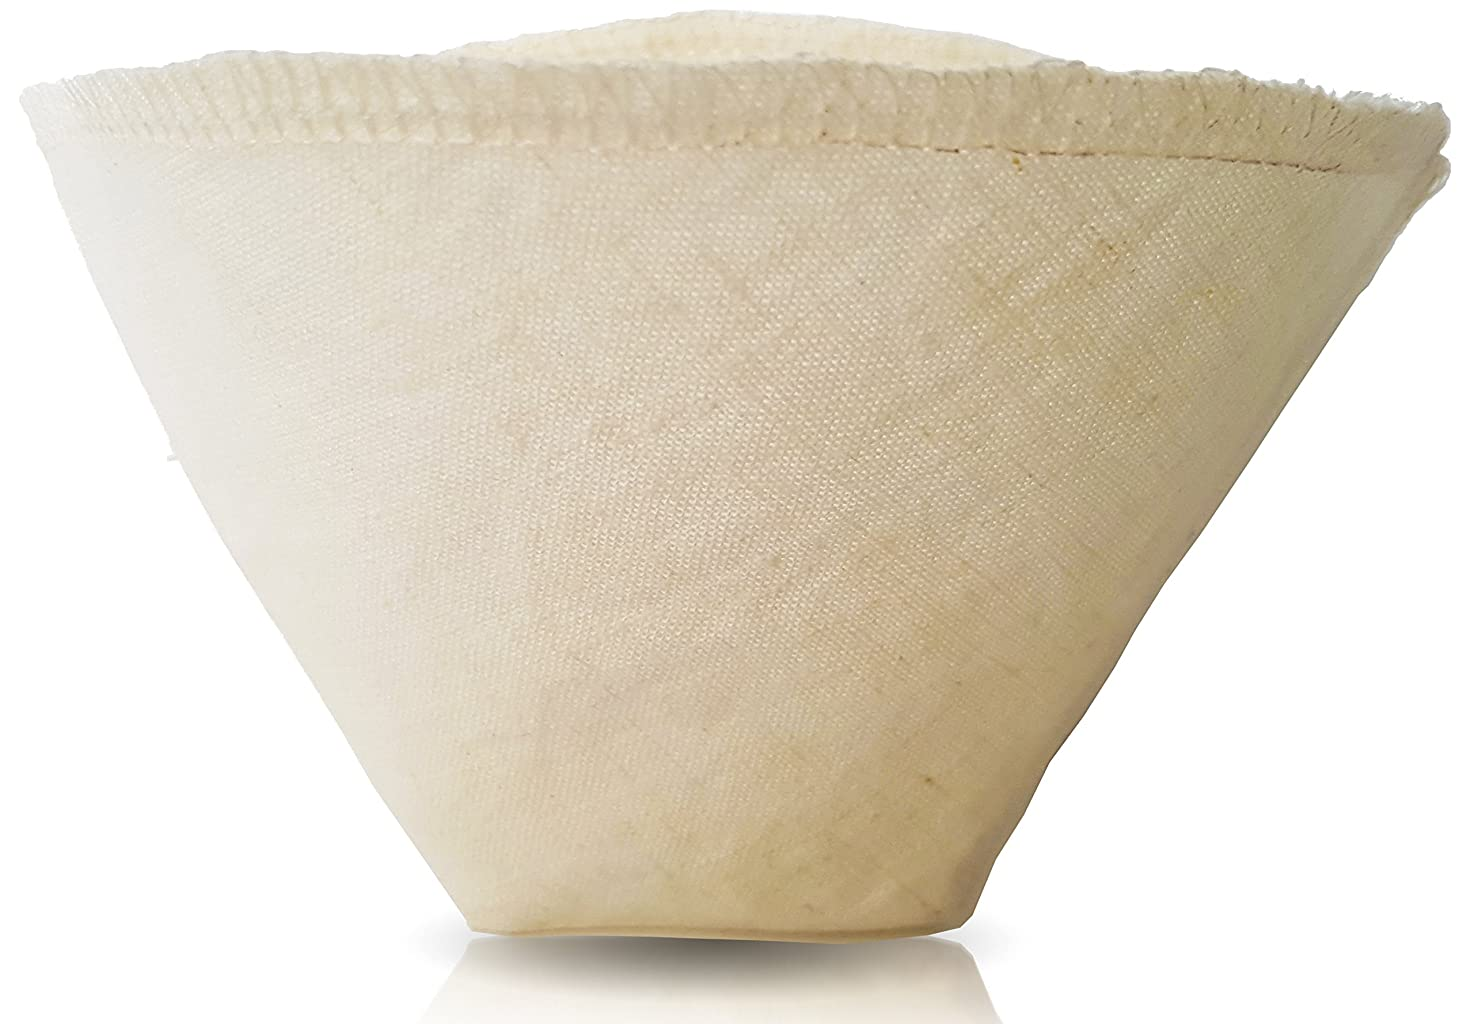 Hemp and Organic Cotton Cloth Coffee Filter by Pinyon Products - Reusable, Natural, Unbleached, Environmentally Friendly Cloth Cone Drip, pour-over Coffee Filter (Size 2; 4-6 Cups)